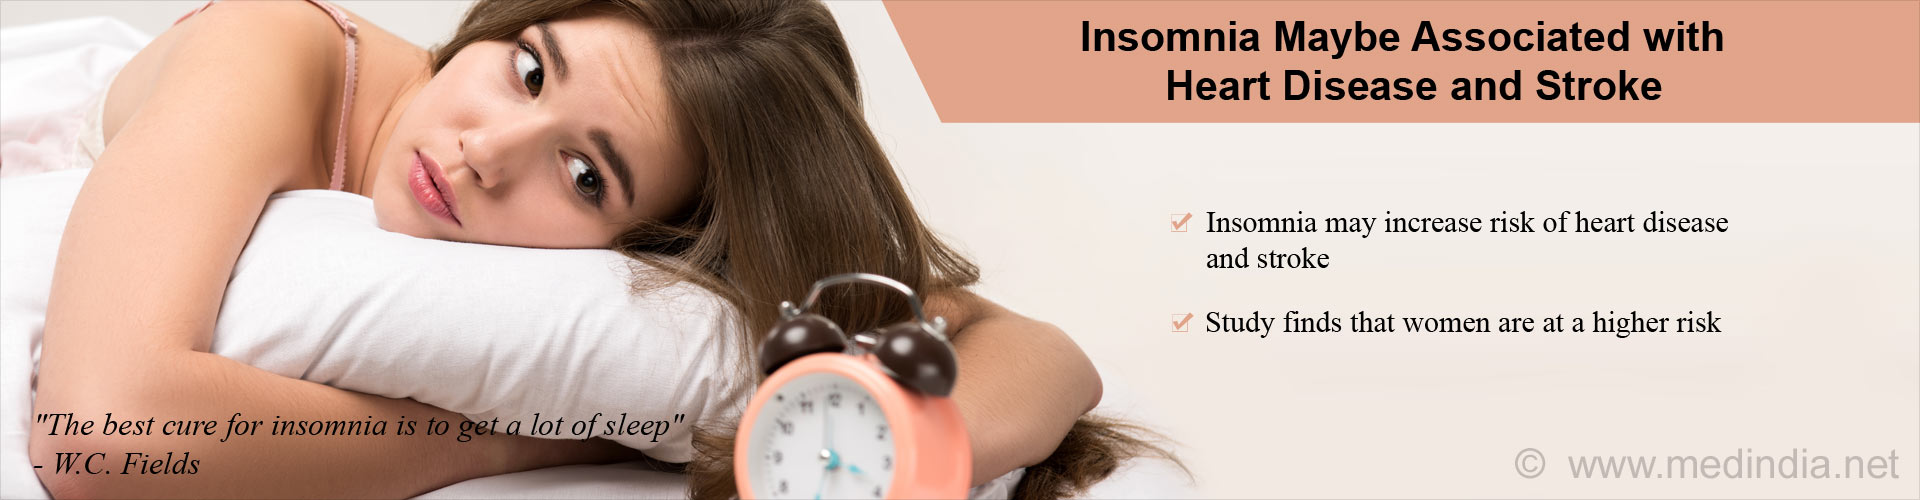 Insomnia Increases Risk of Heart Diseases, Stroke